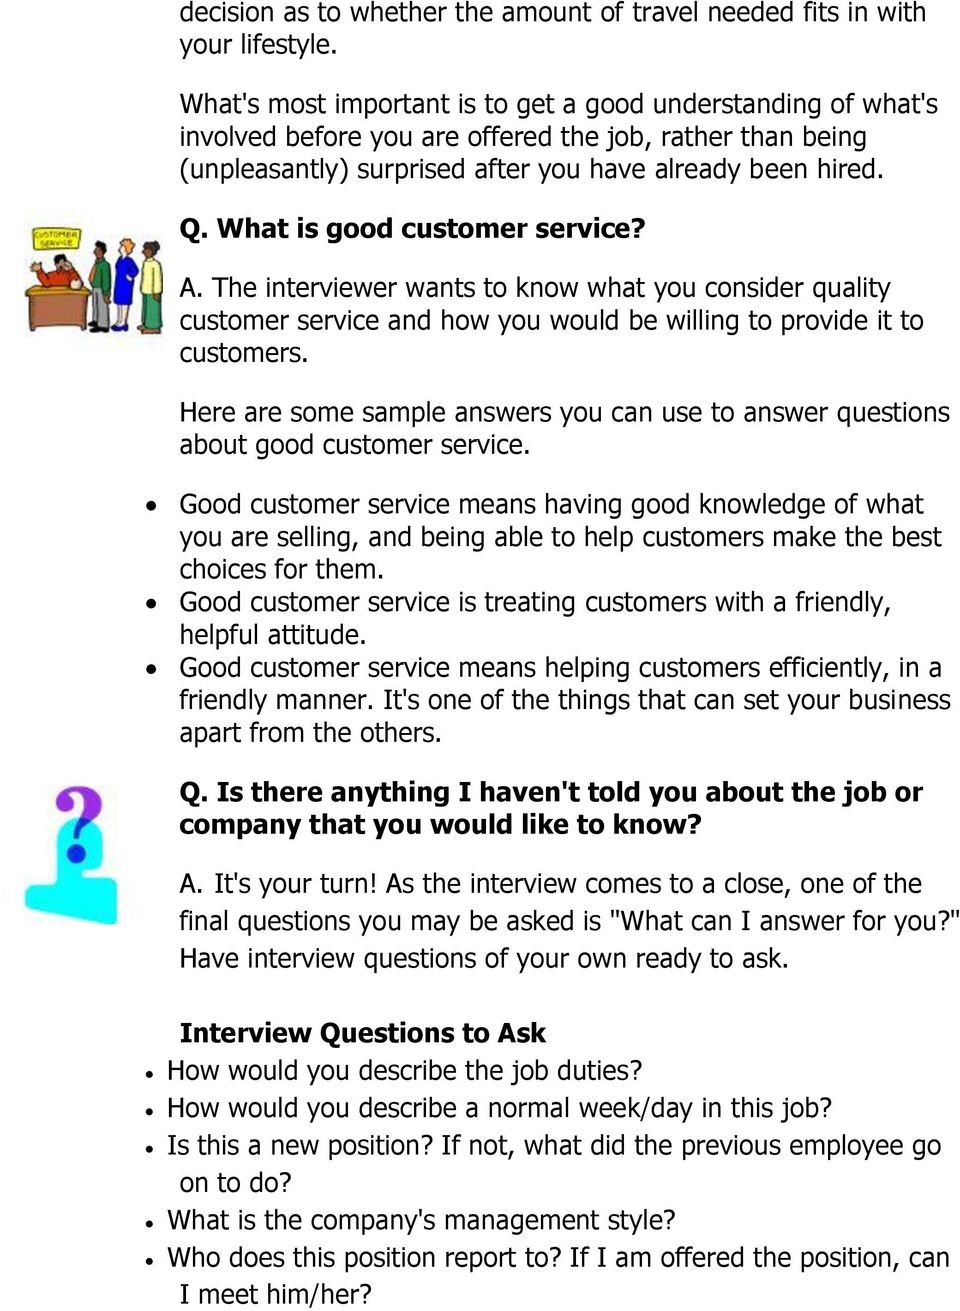 What is good customer service? A. The interviewer wants to know what you consider quality customer service and how you would be willing to provide it to customers.